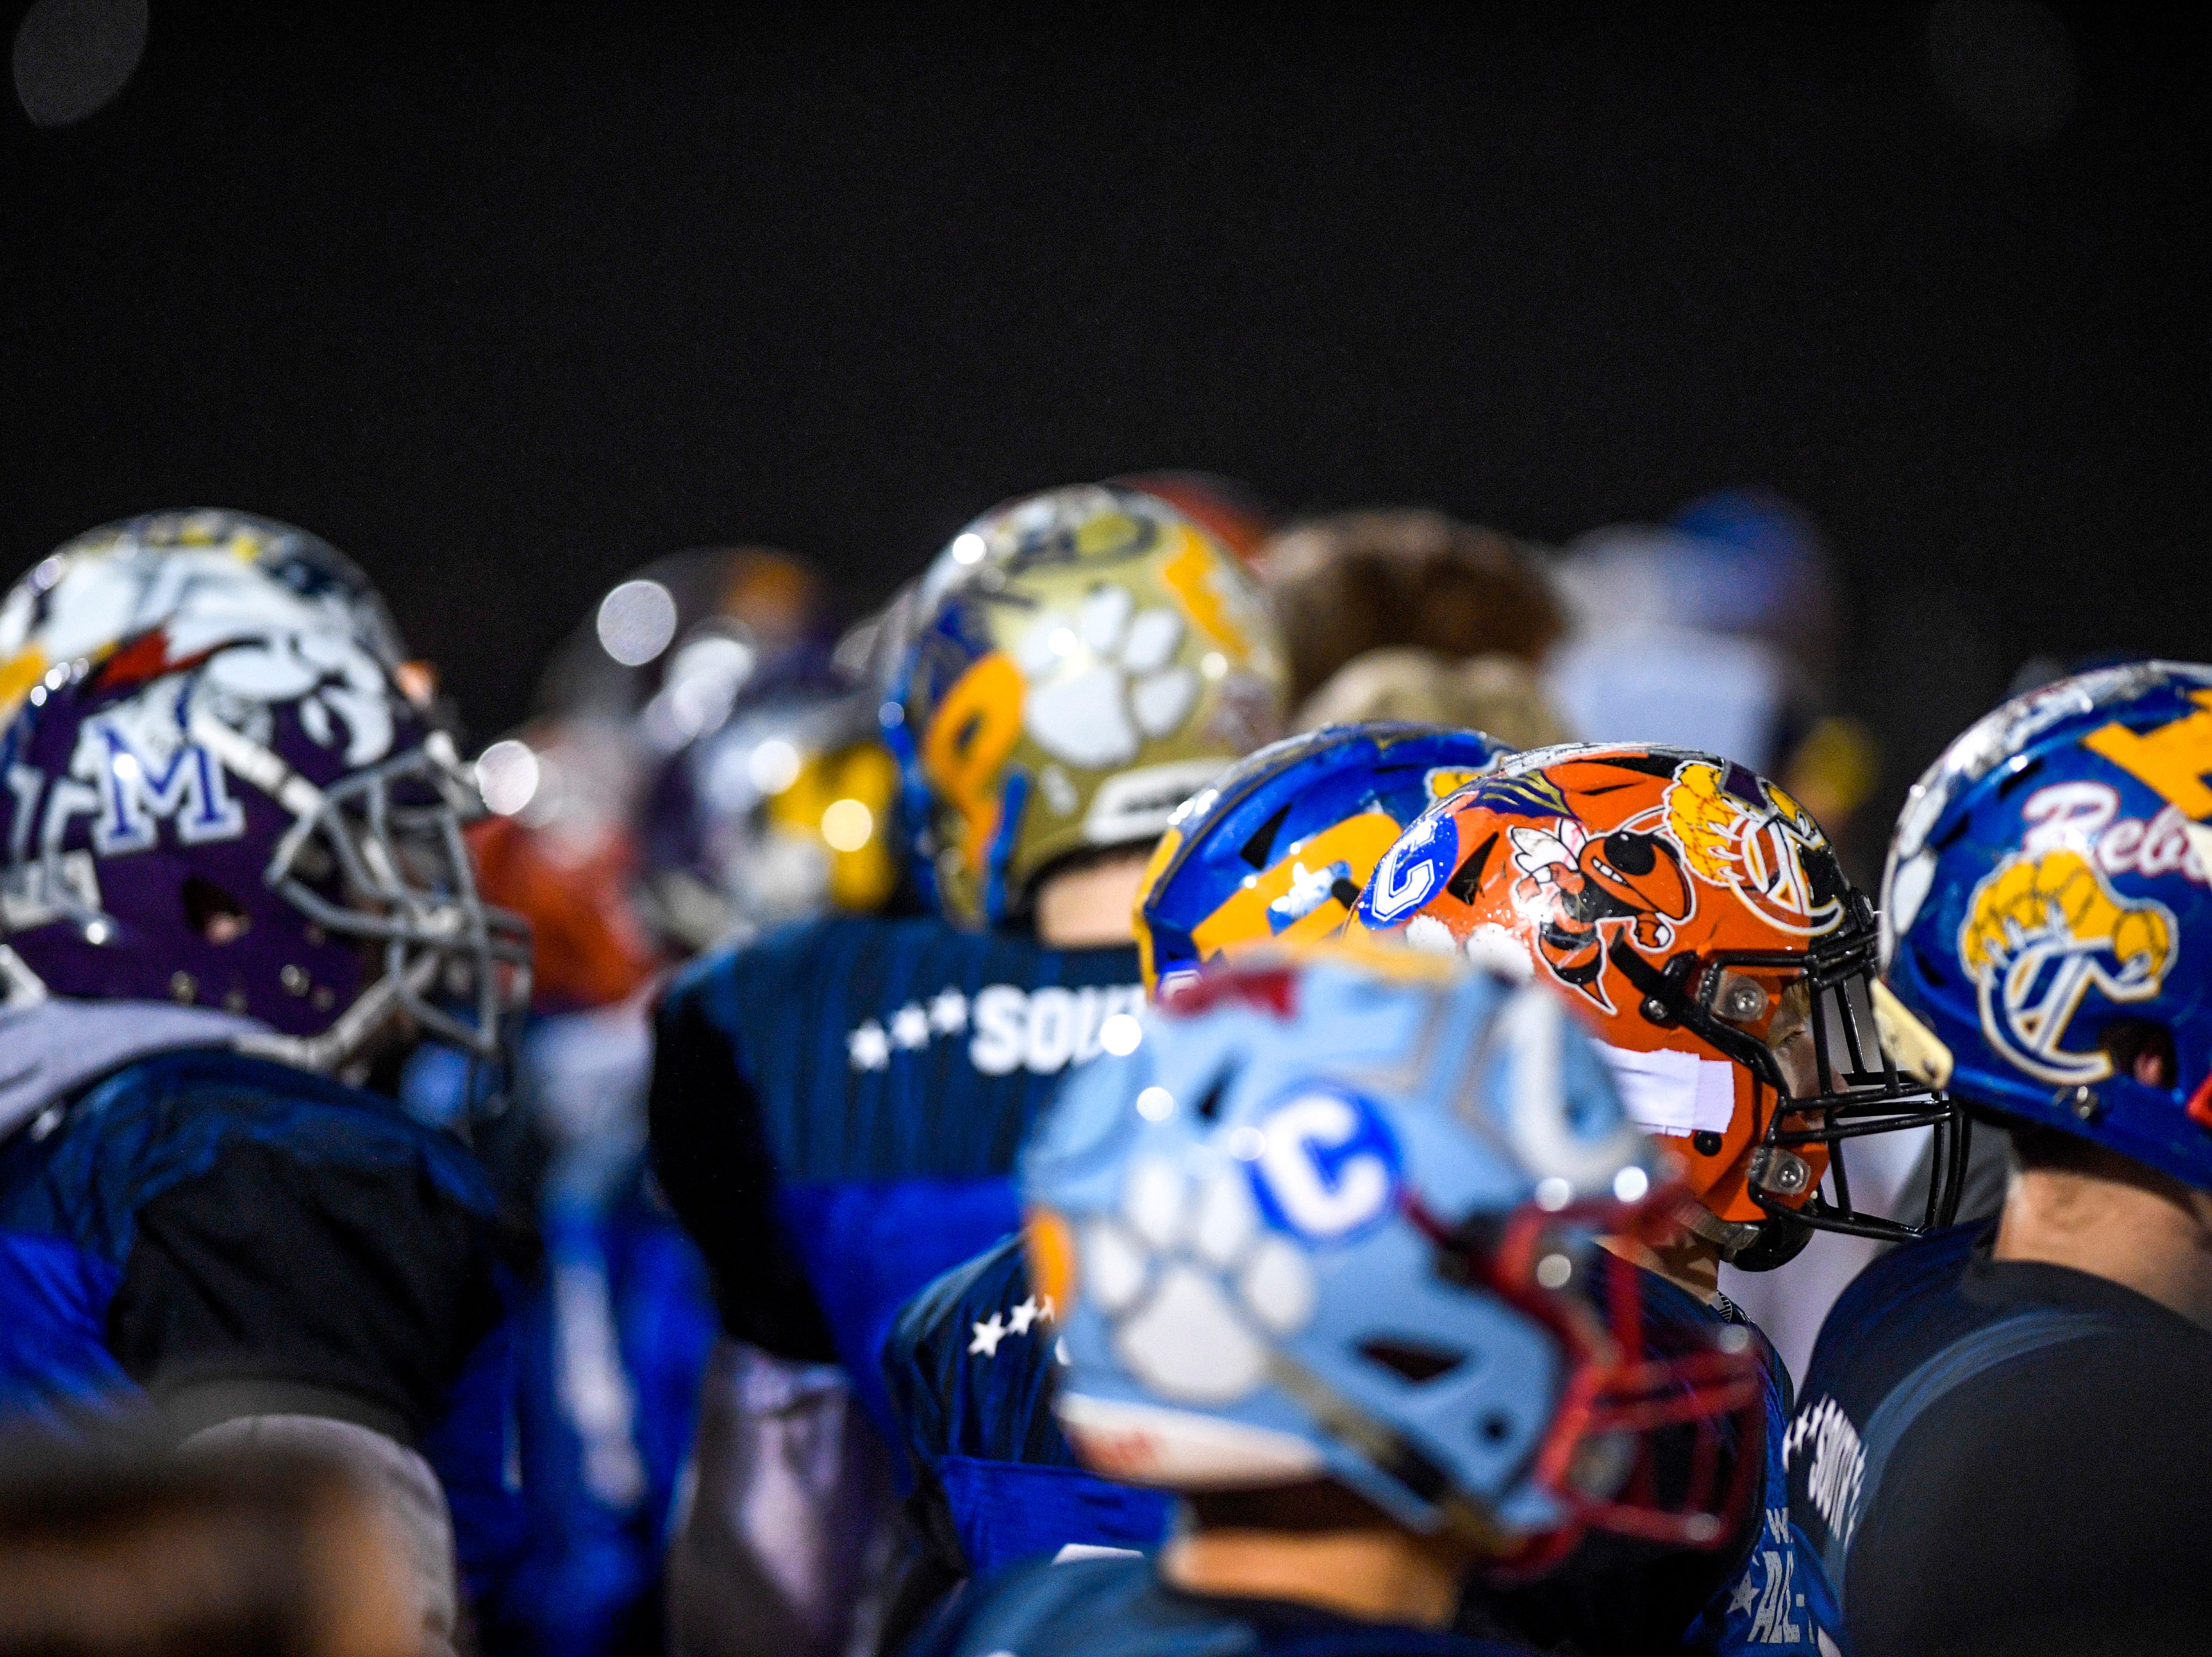 South players mingle on the sidelines during the West Tennessee All-Star football game at University School of Jackson in Jackson, Tenn., on Friday, Dec. 7, 2018.